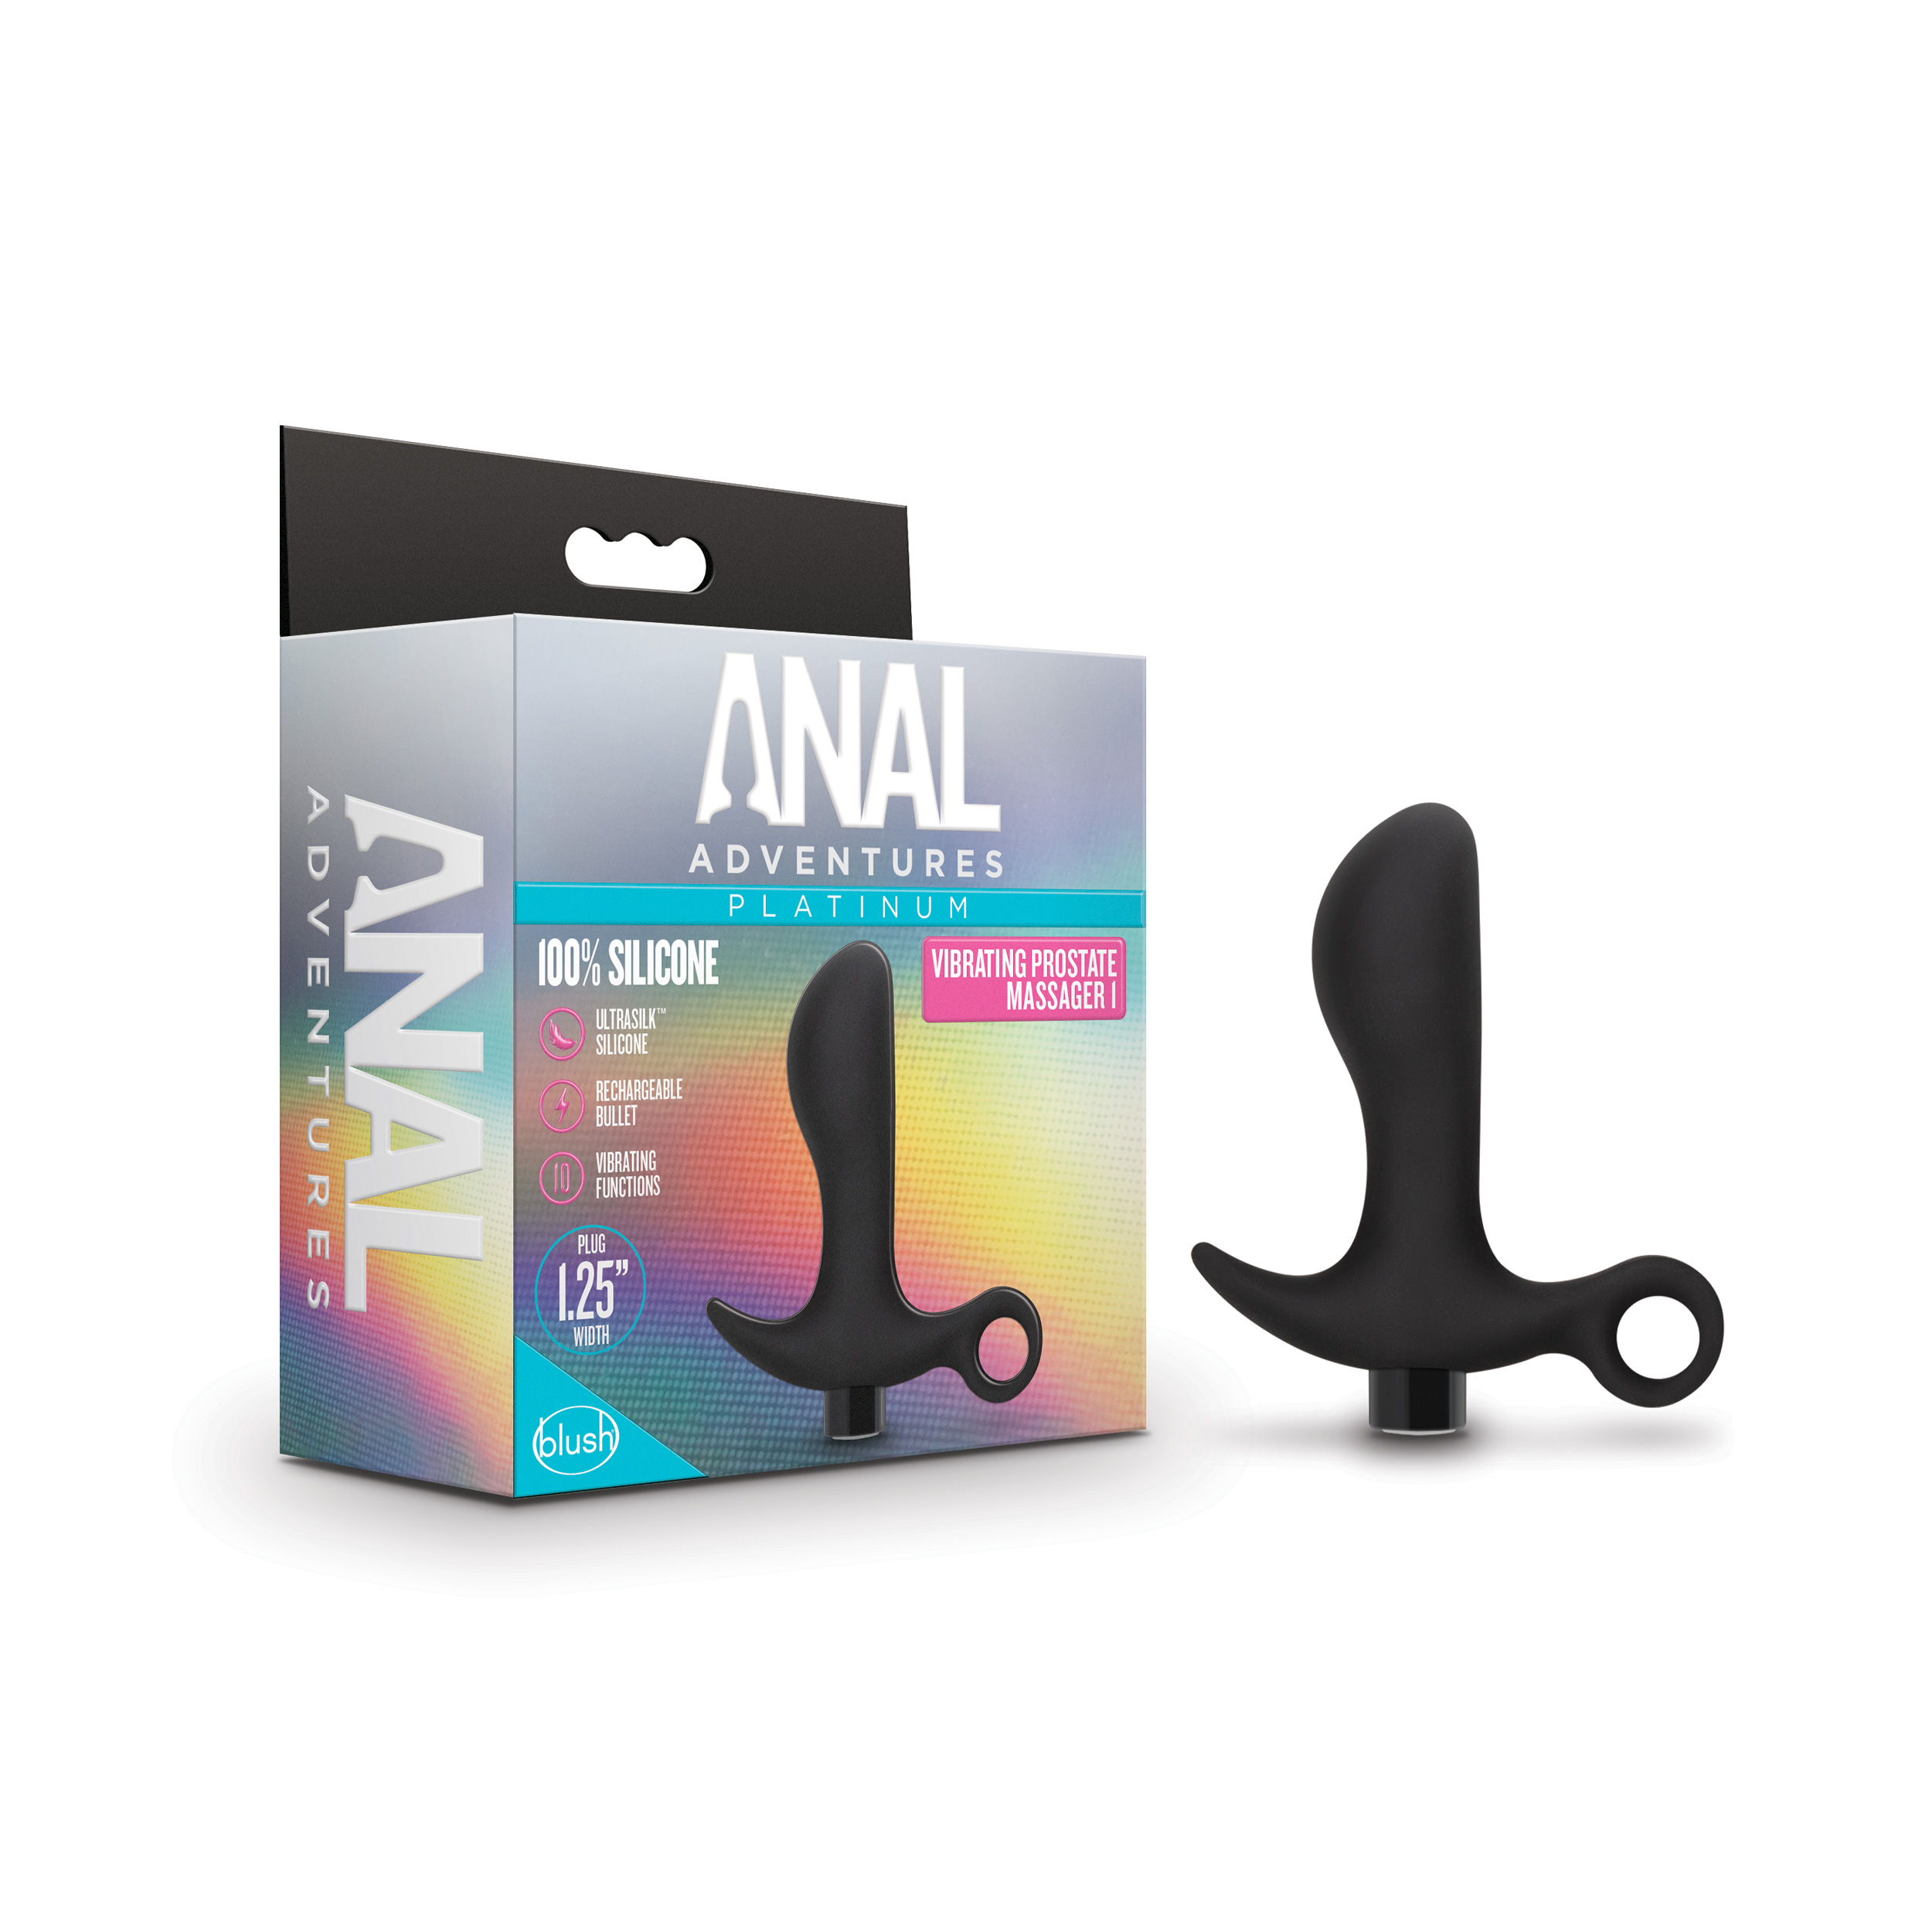 Anal Adventures - Platinum - Silicone Vibrating Prostate Massager 01 - Black